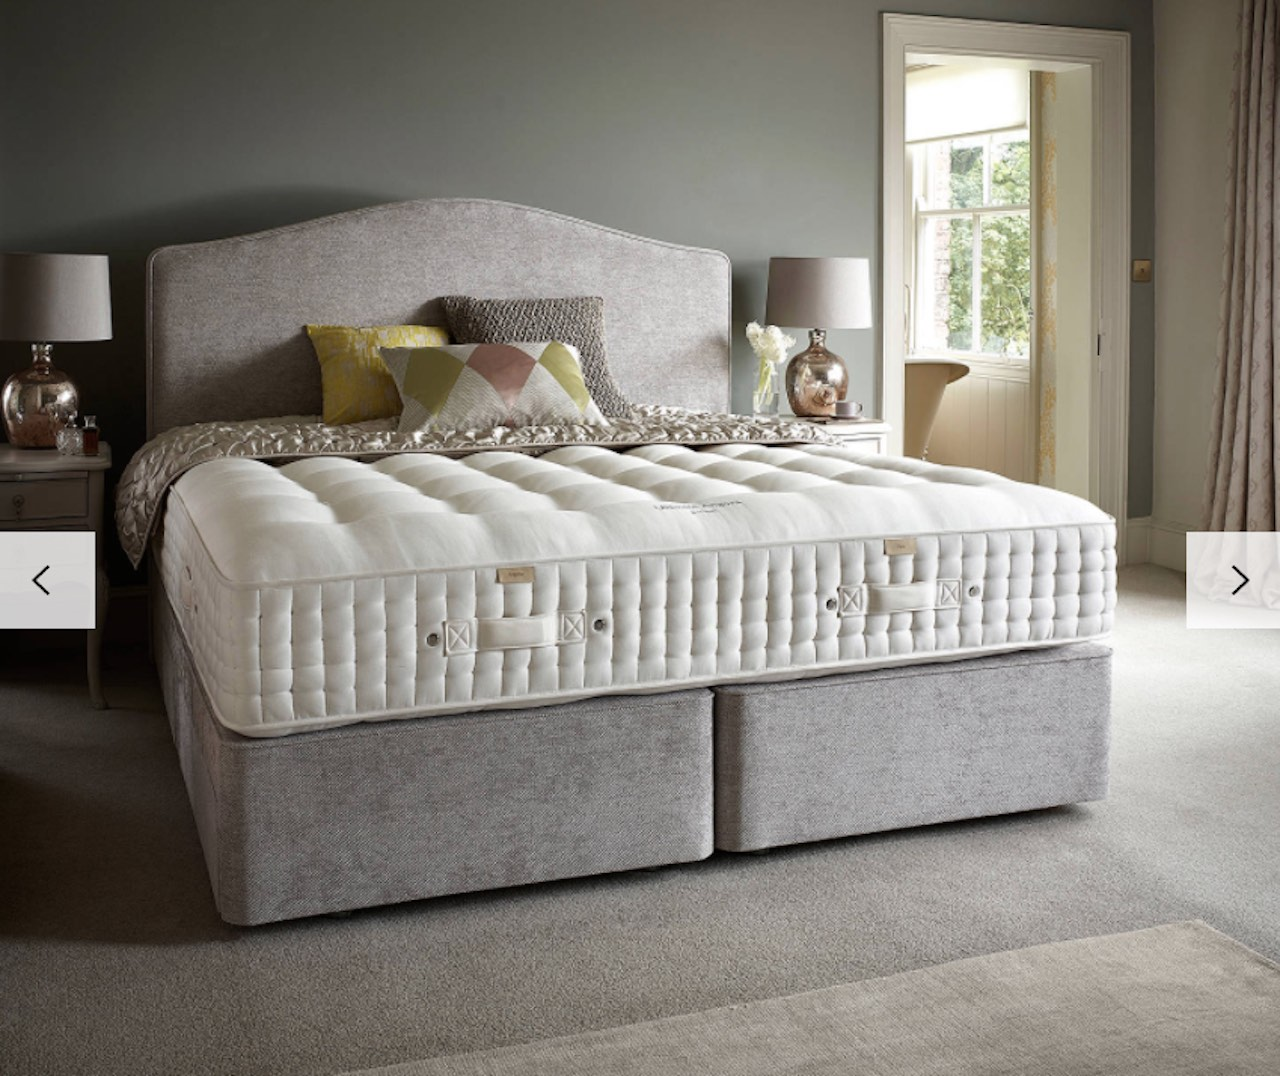 John lewis angora mattress review